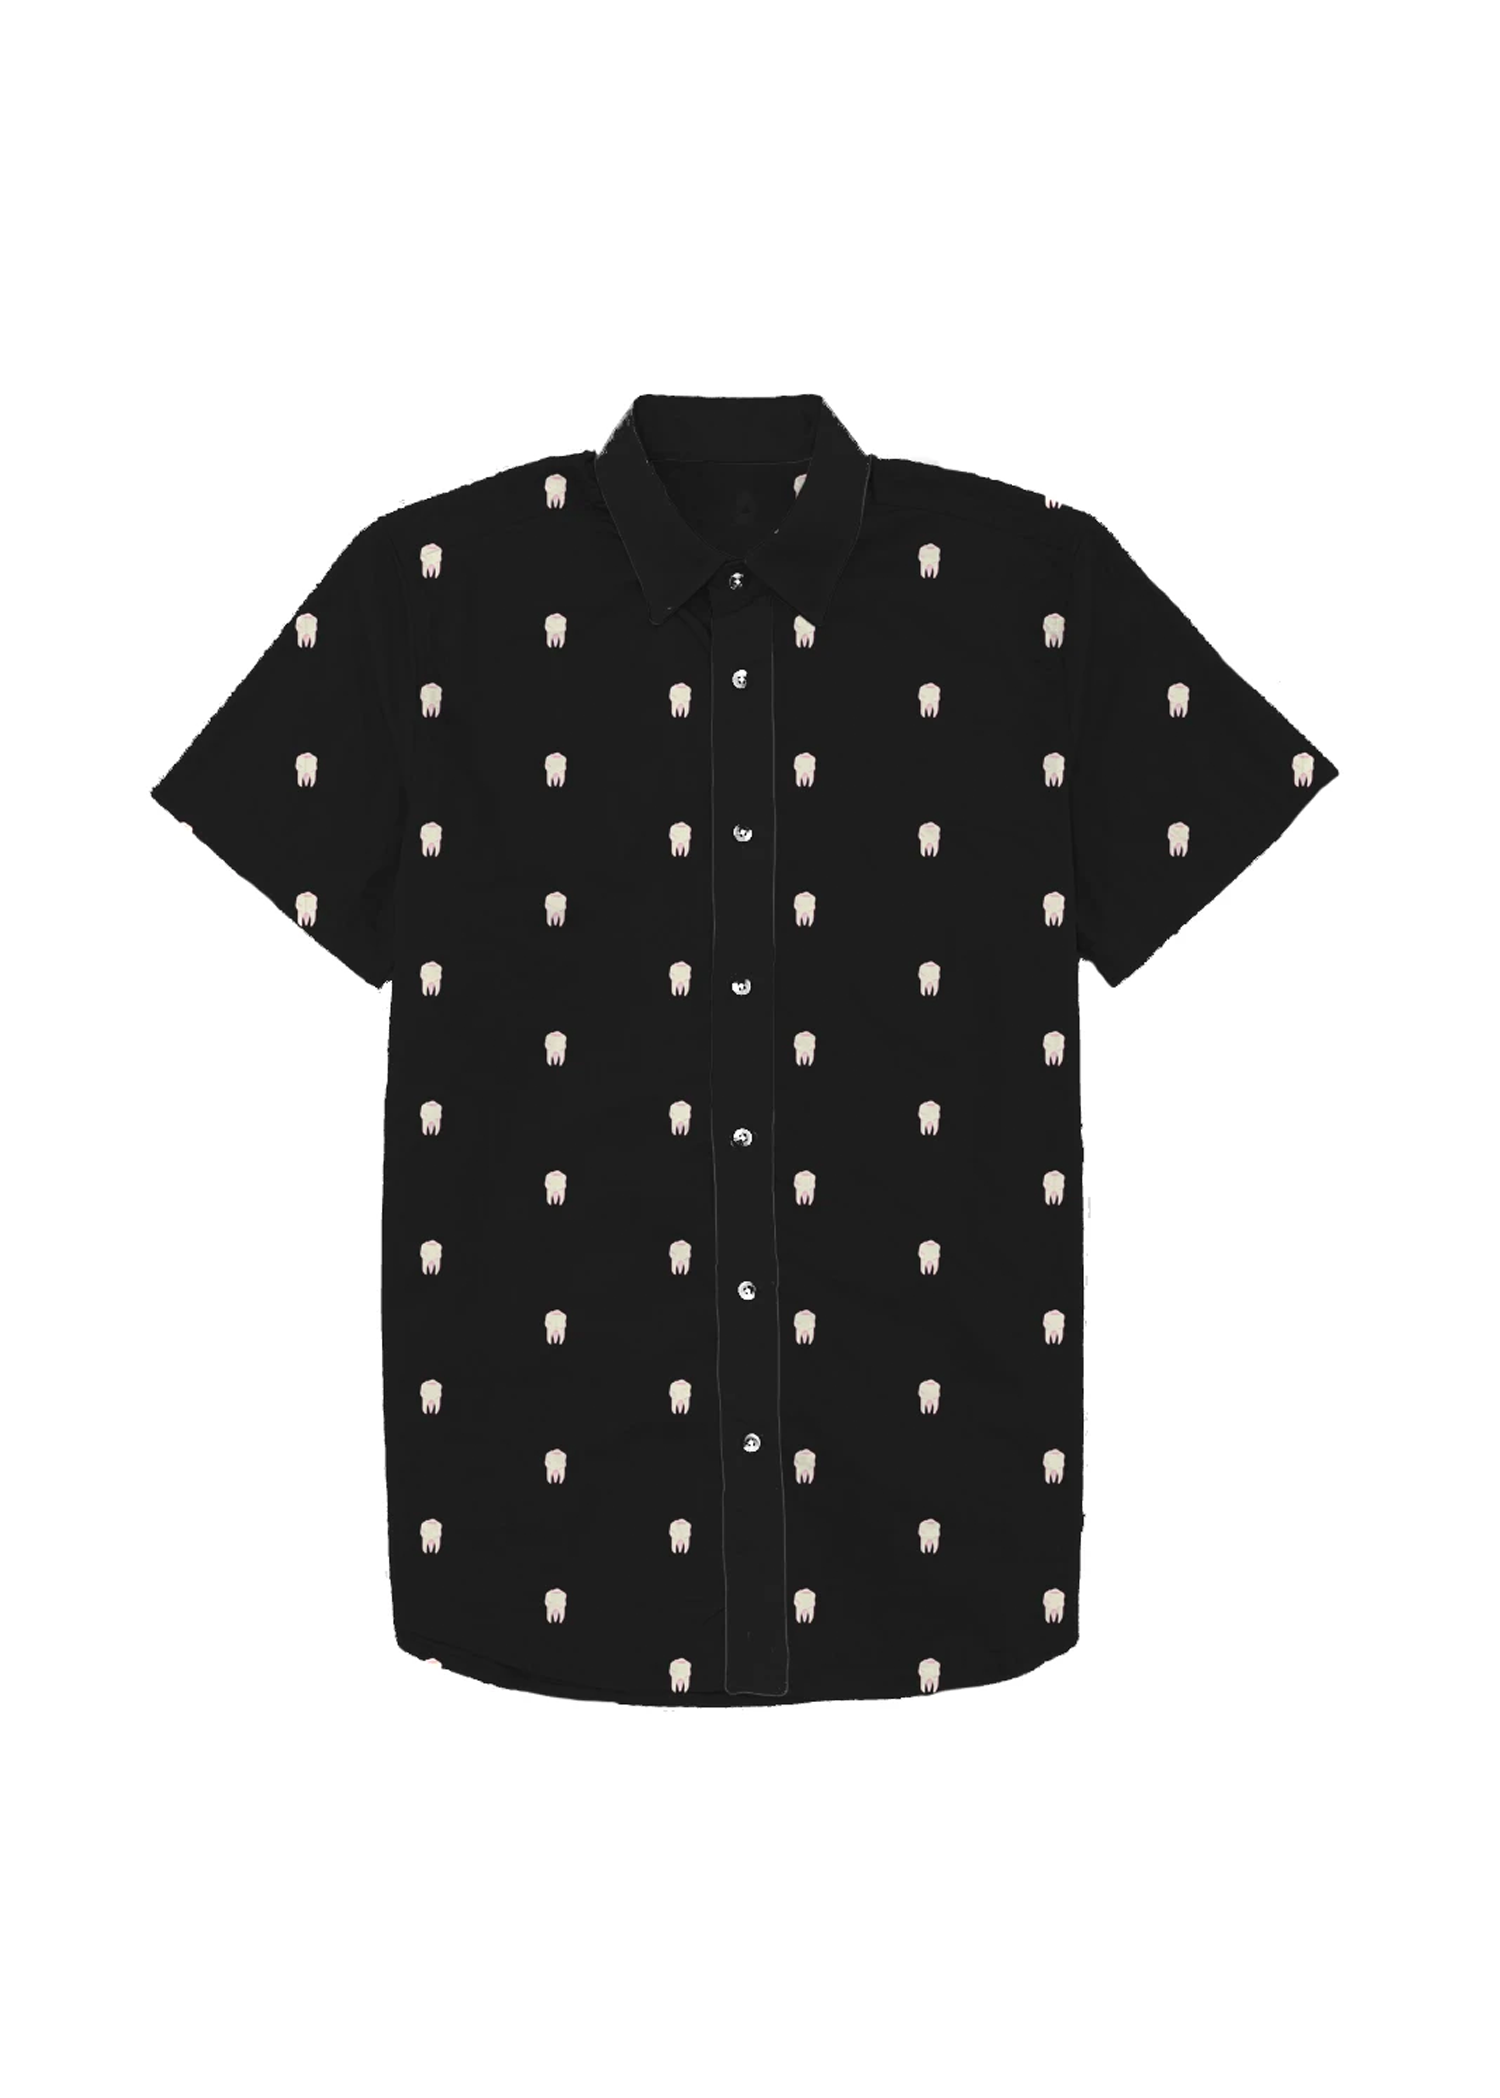 toothy dad shirt in black